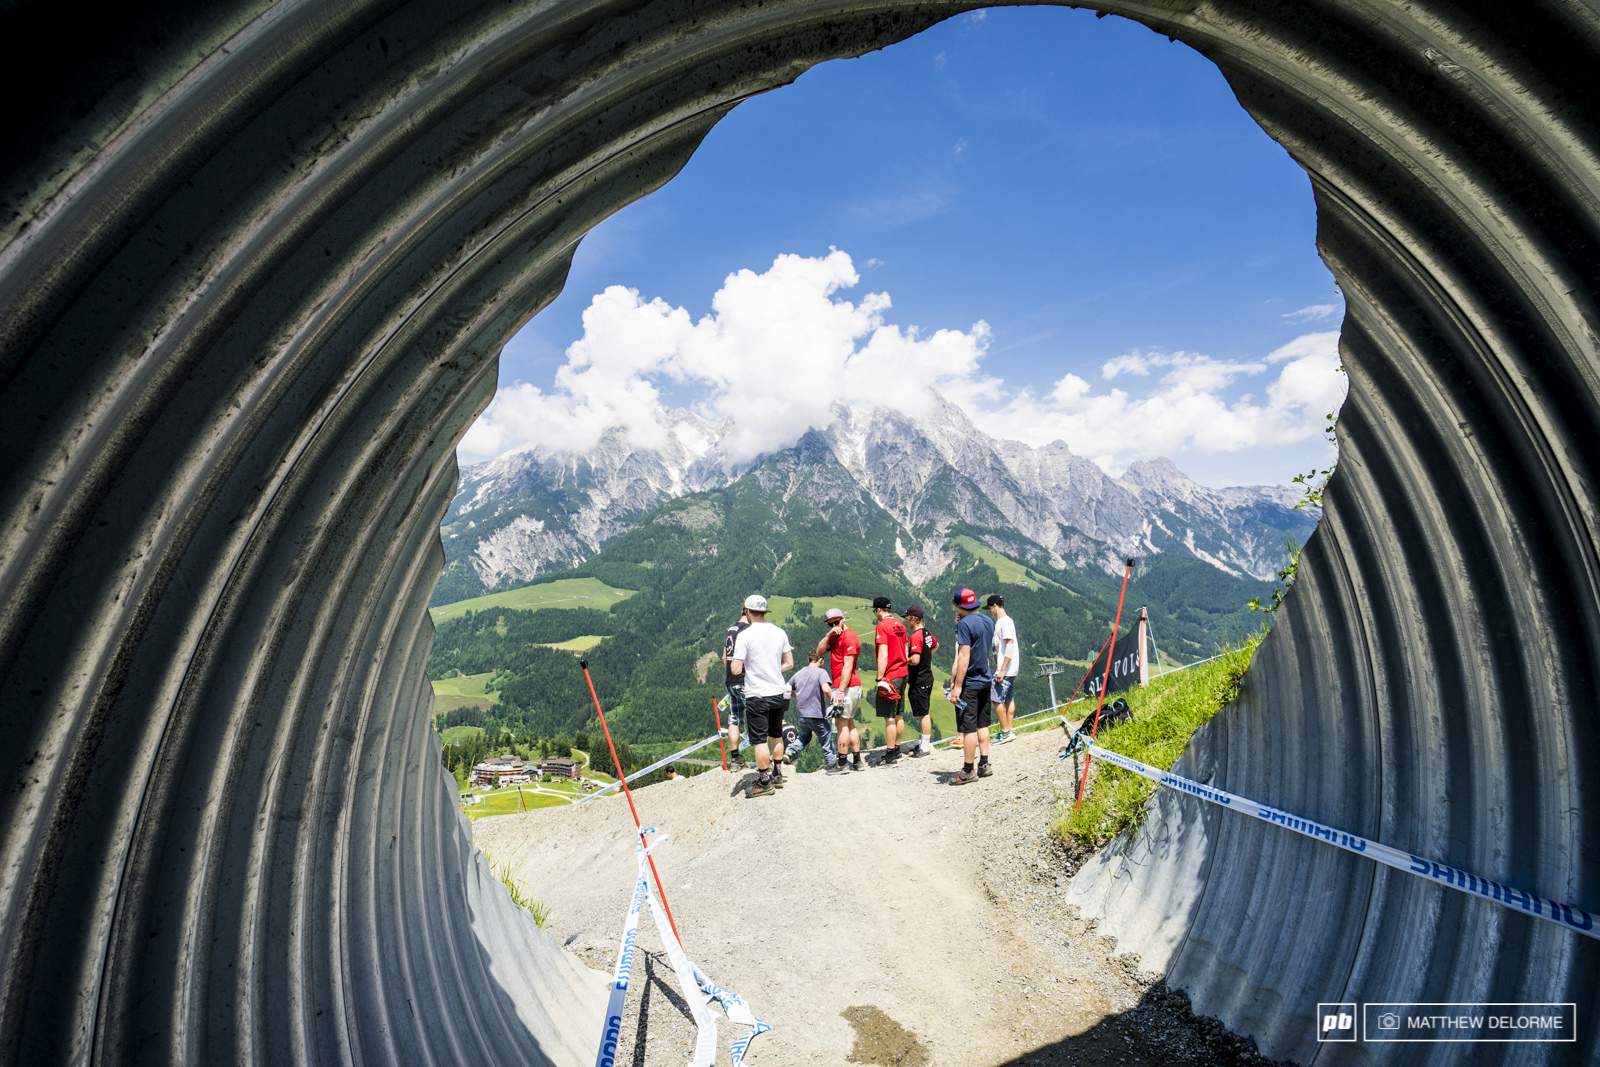 Because the view here never gets old. Mountains framed in steel culverts.